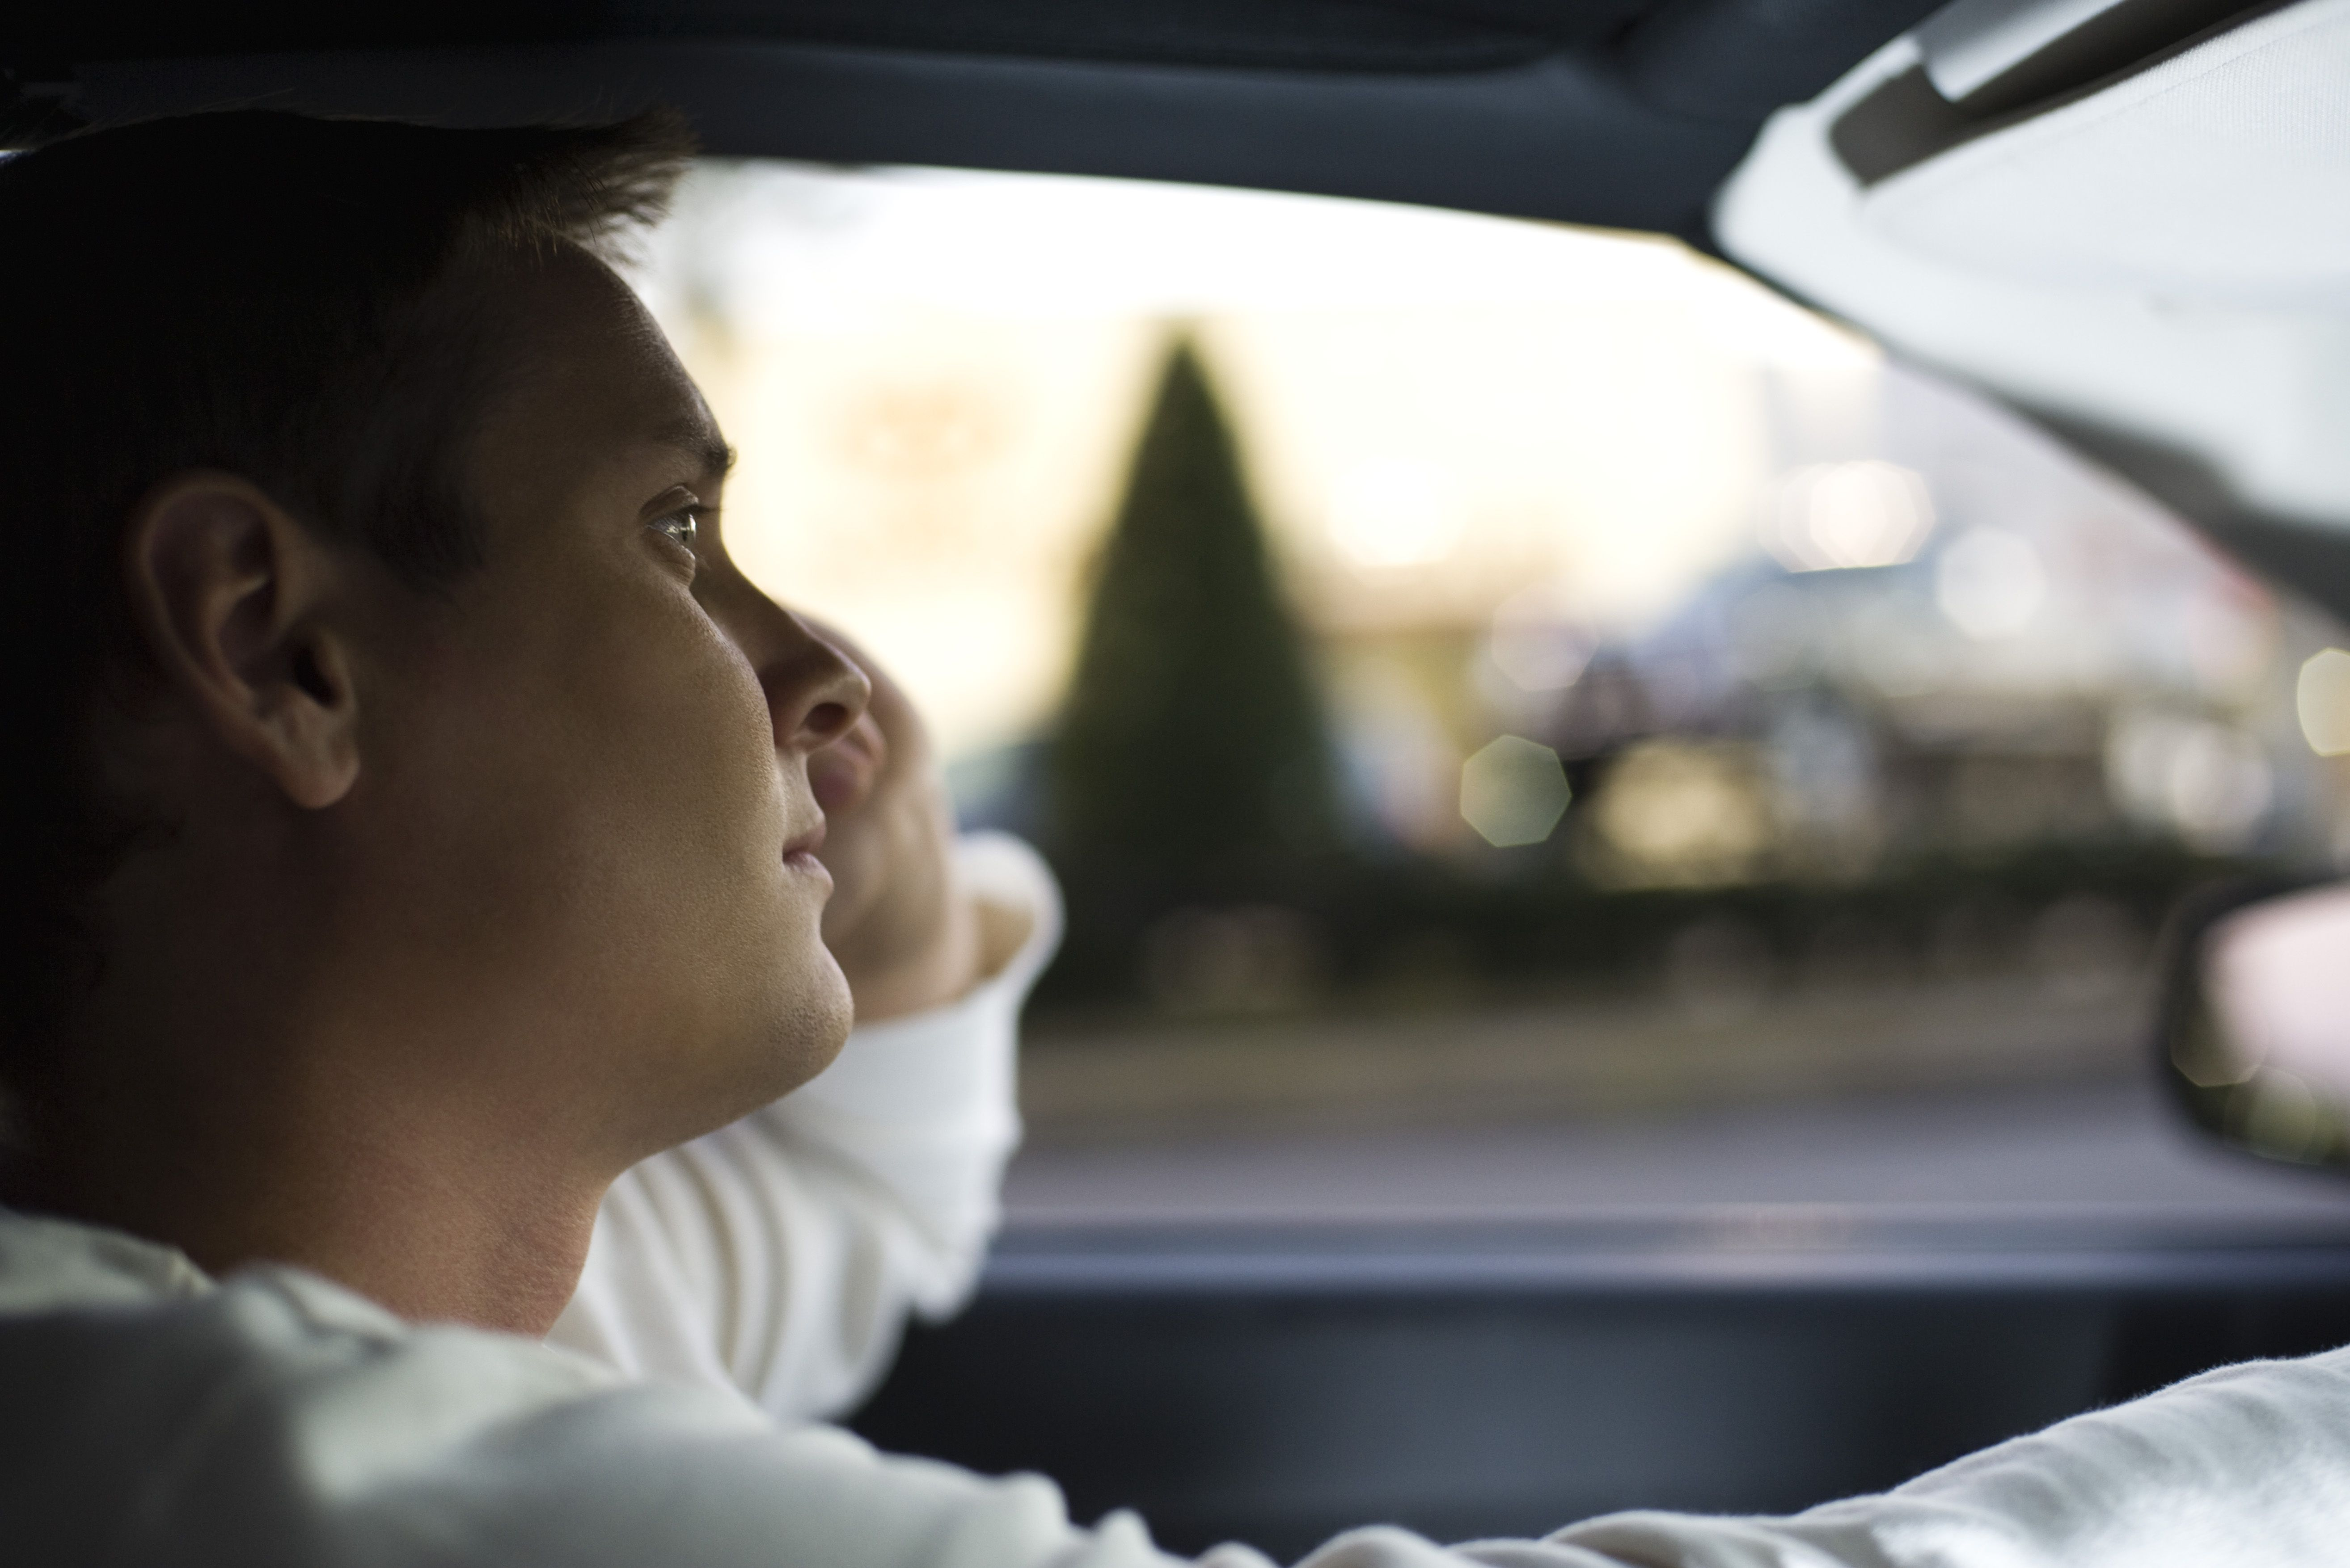 Man driving, lost in thought